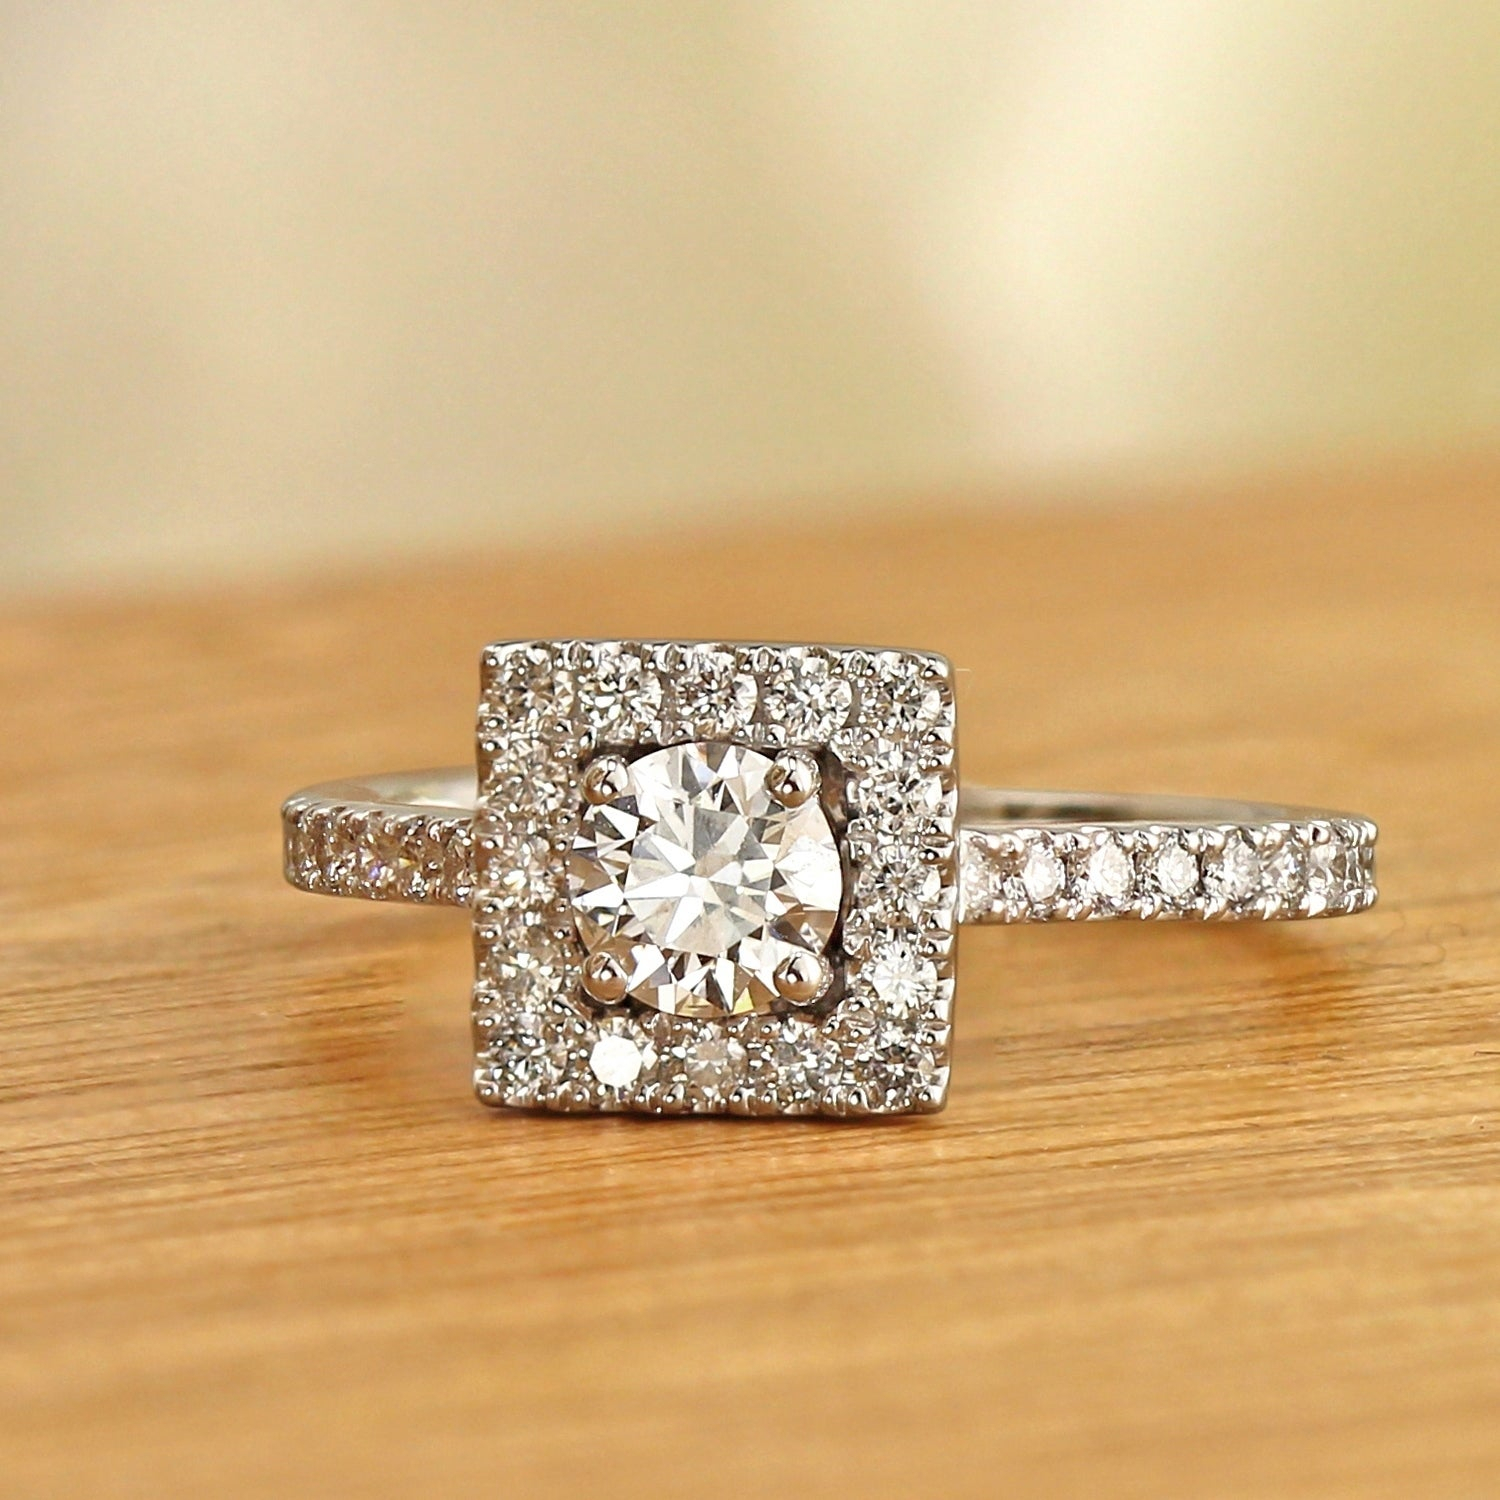 14k Gold 1ctw Lab Grown Square Halo Diamond Engagement Ring Ethical Sparkle Regarding 2018 Square Sparkle Halo Rings (View 10 of 25)